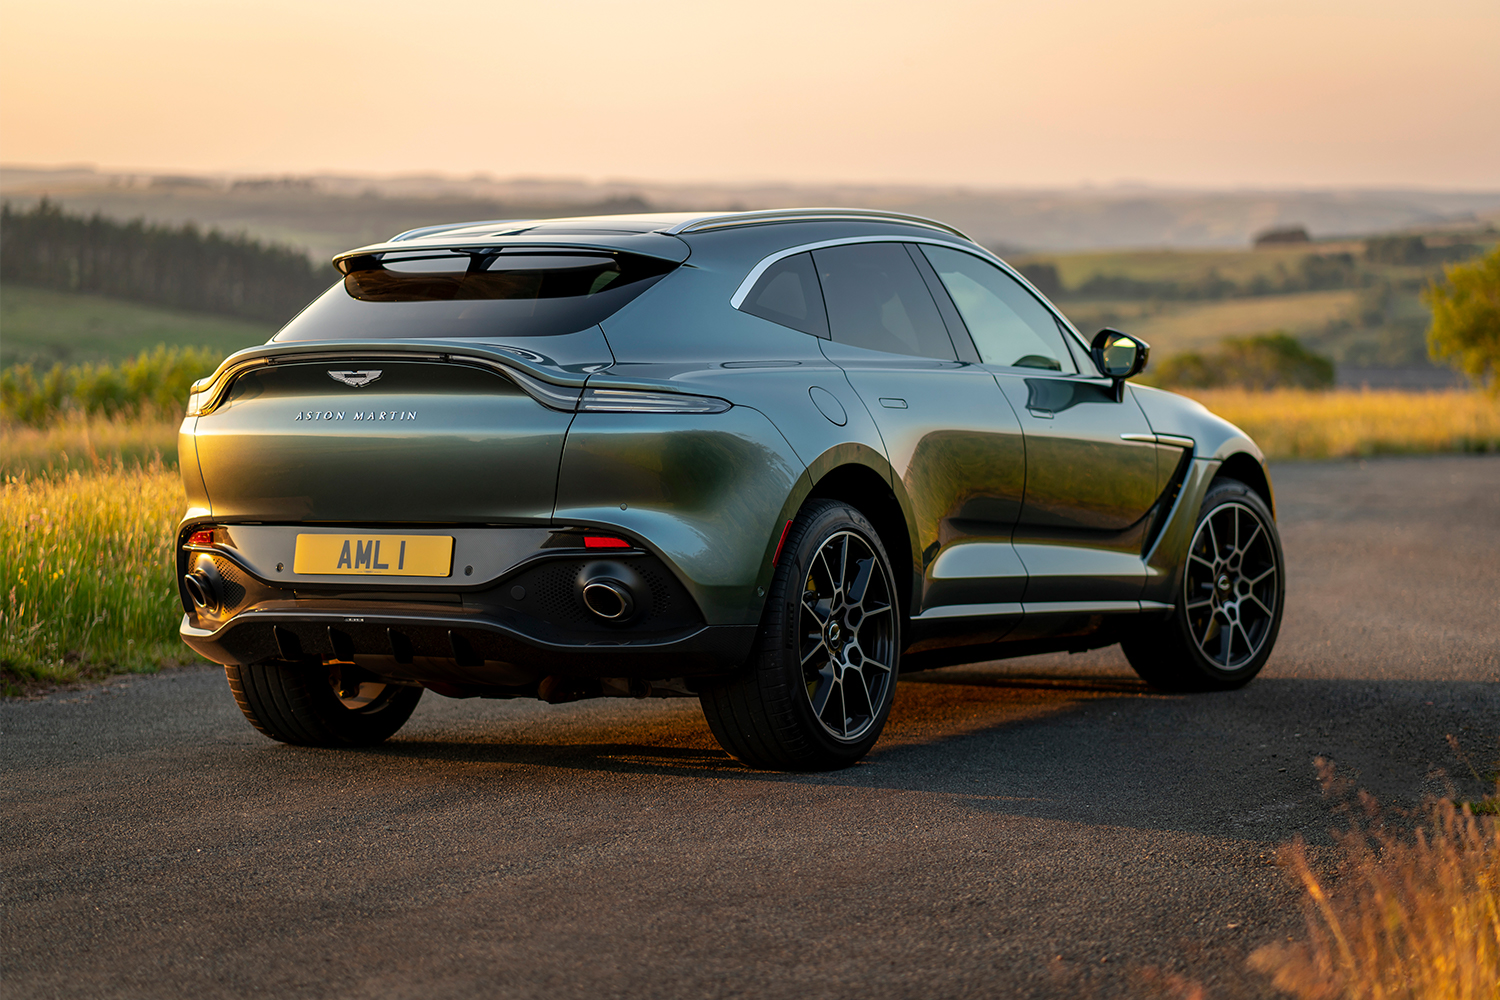 The back end of a 2021 Aston Martin DBX SUV in the country